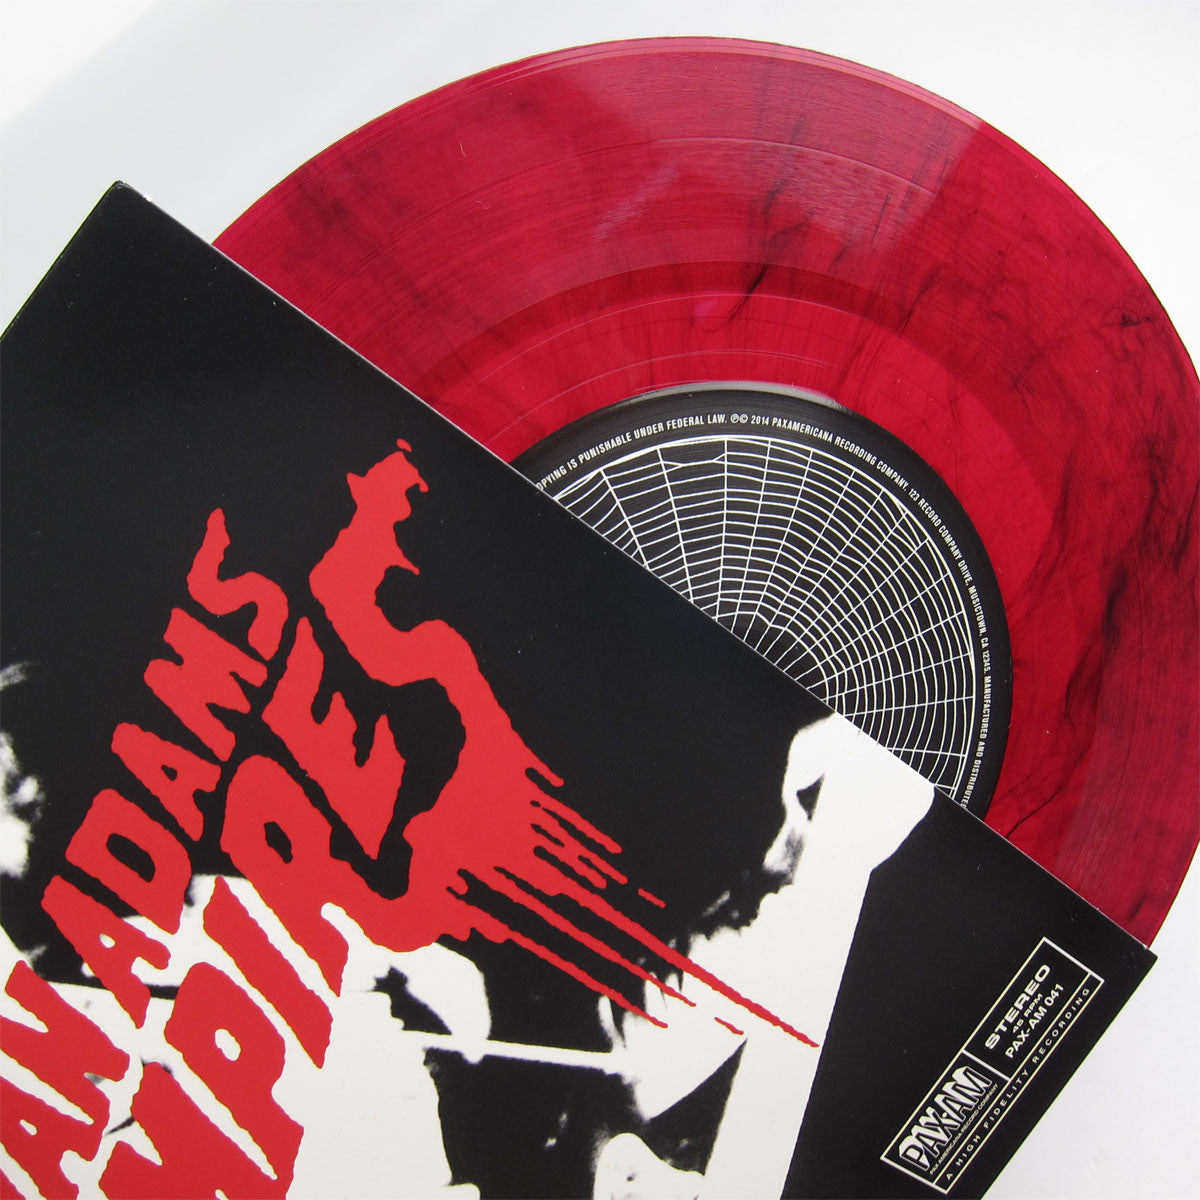 "Ryan Adams: Vampires (Limited Edition) Vinyl 7"" detail"